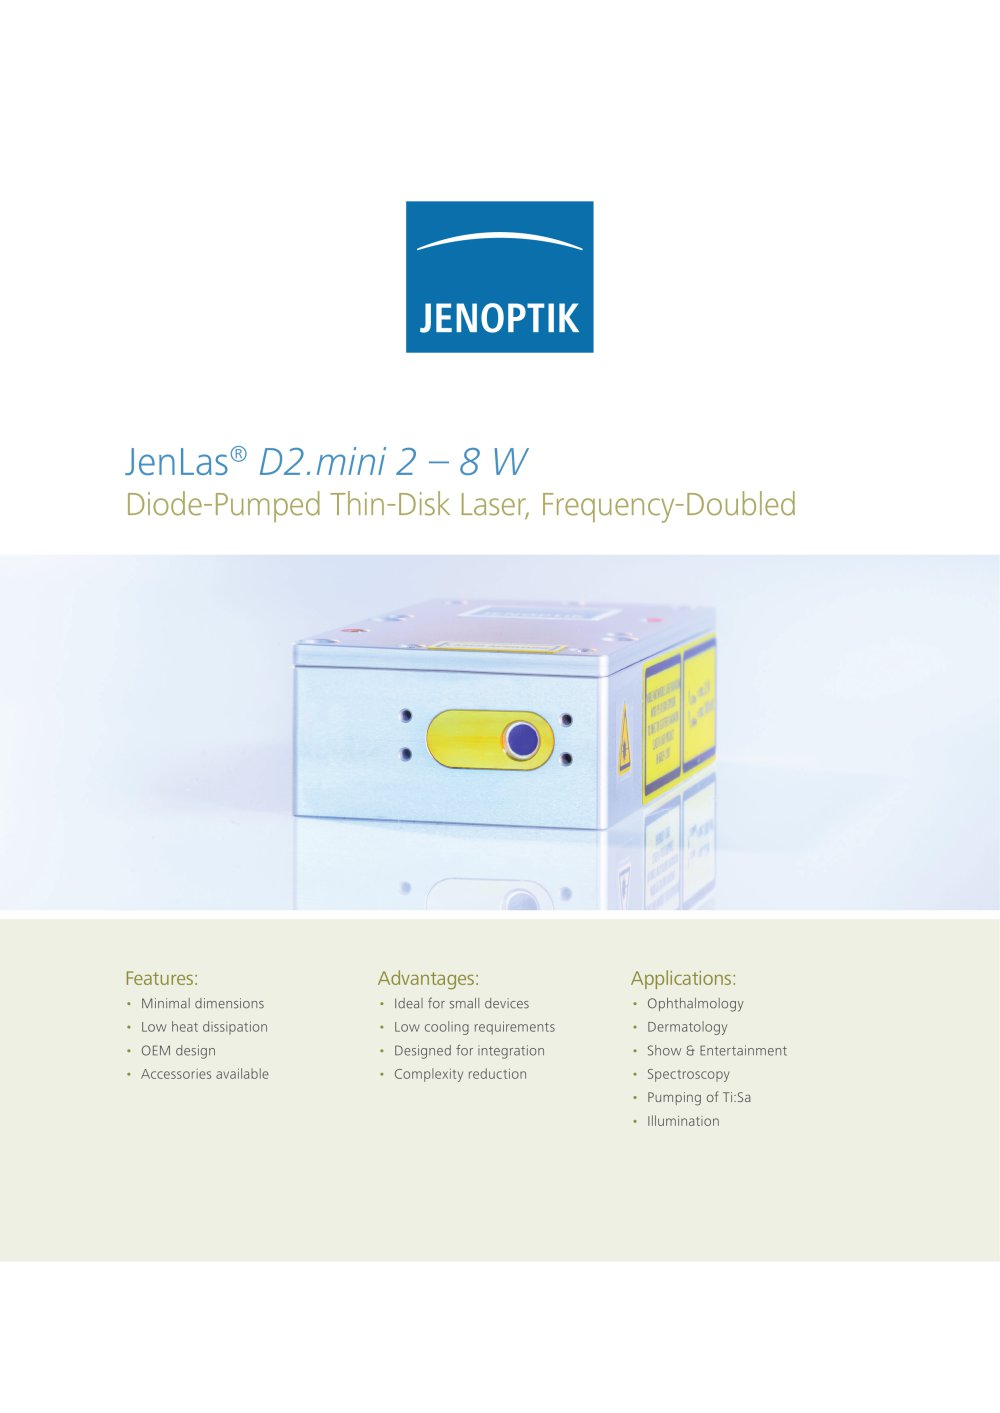 Diode Pumped Thin Disk Lasers Jenoptik I Healthcare Industry Half Page System Diagram 1 16 Pages